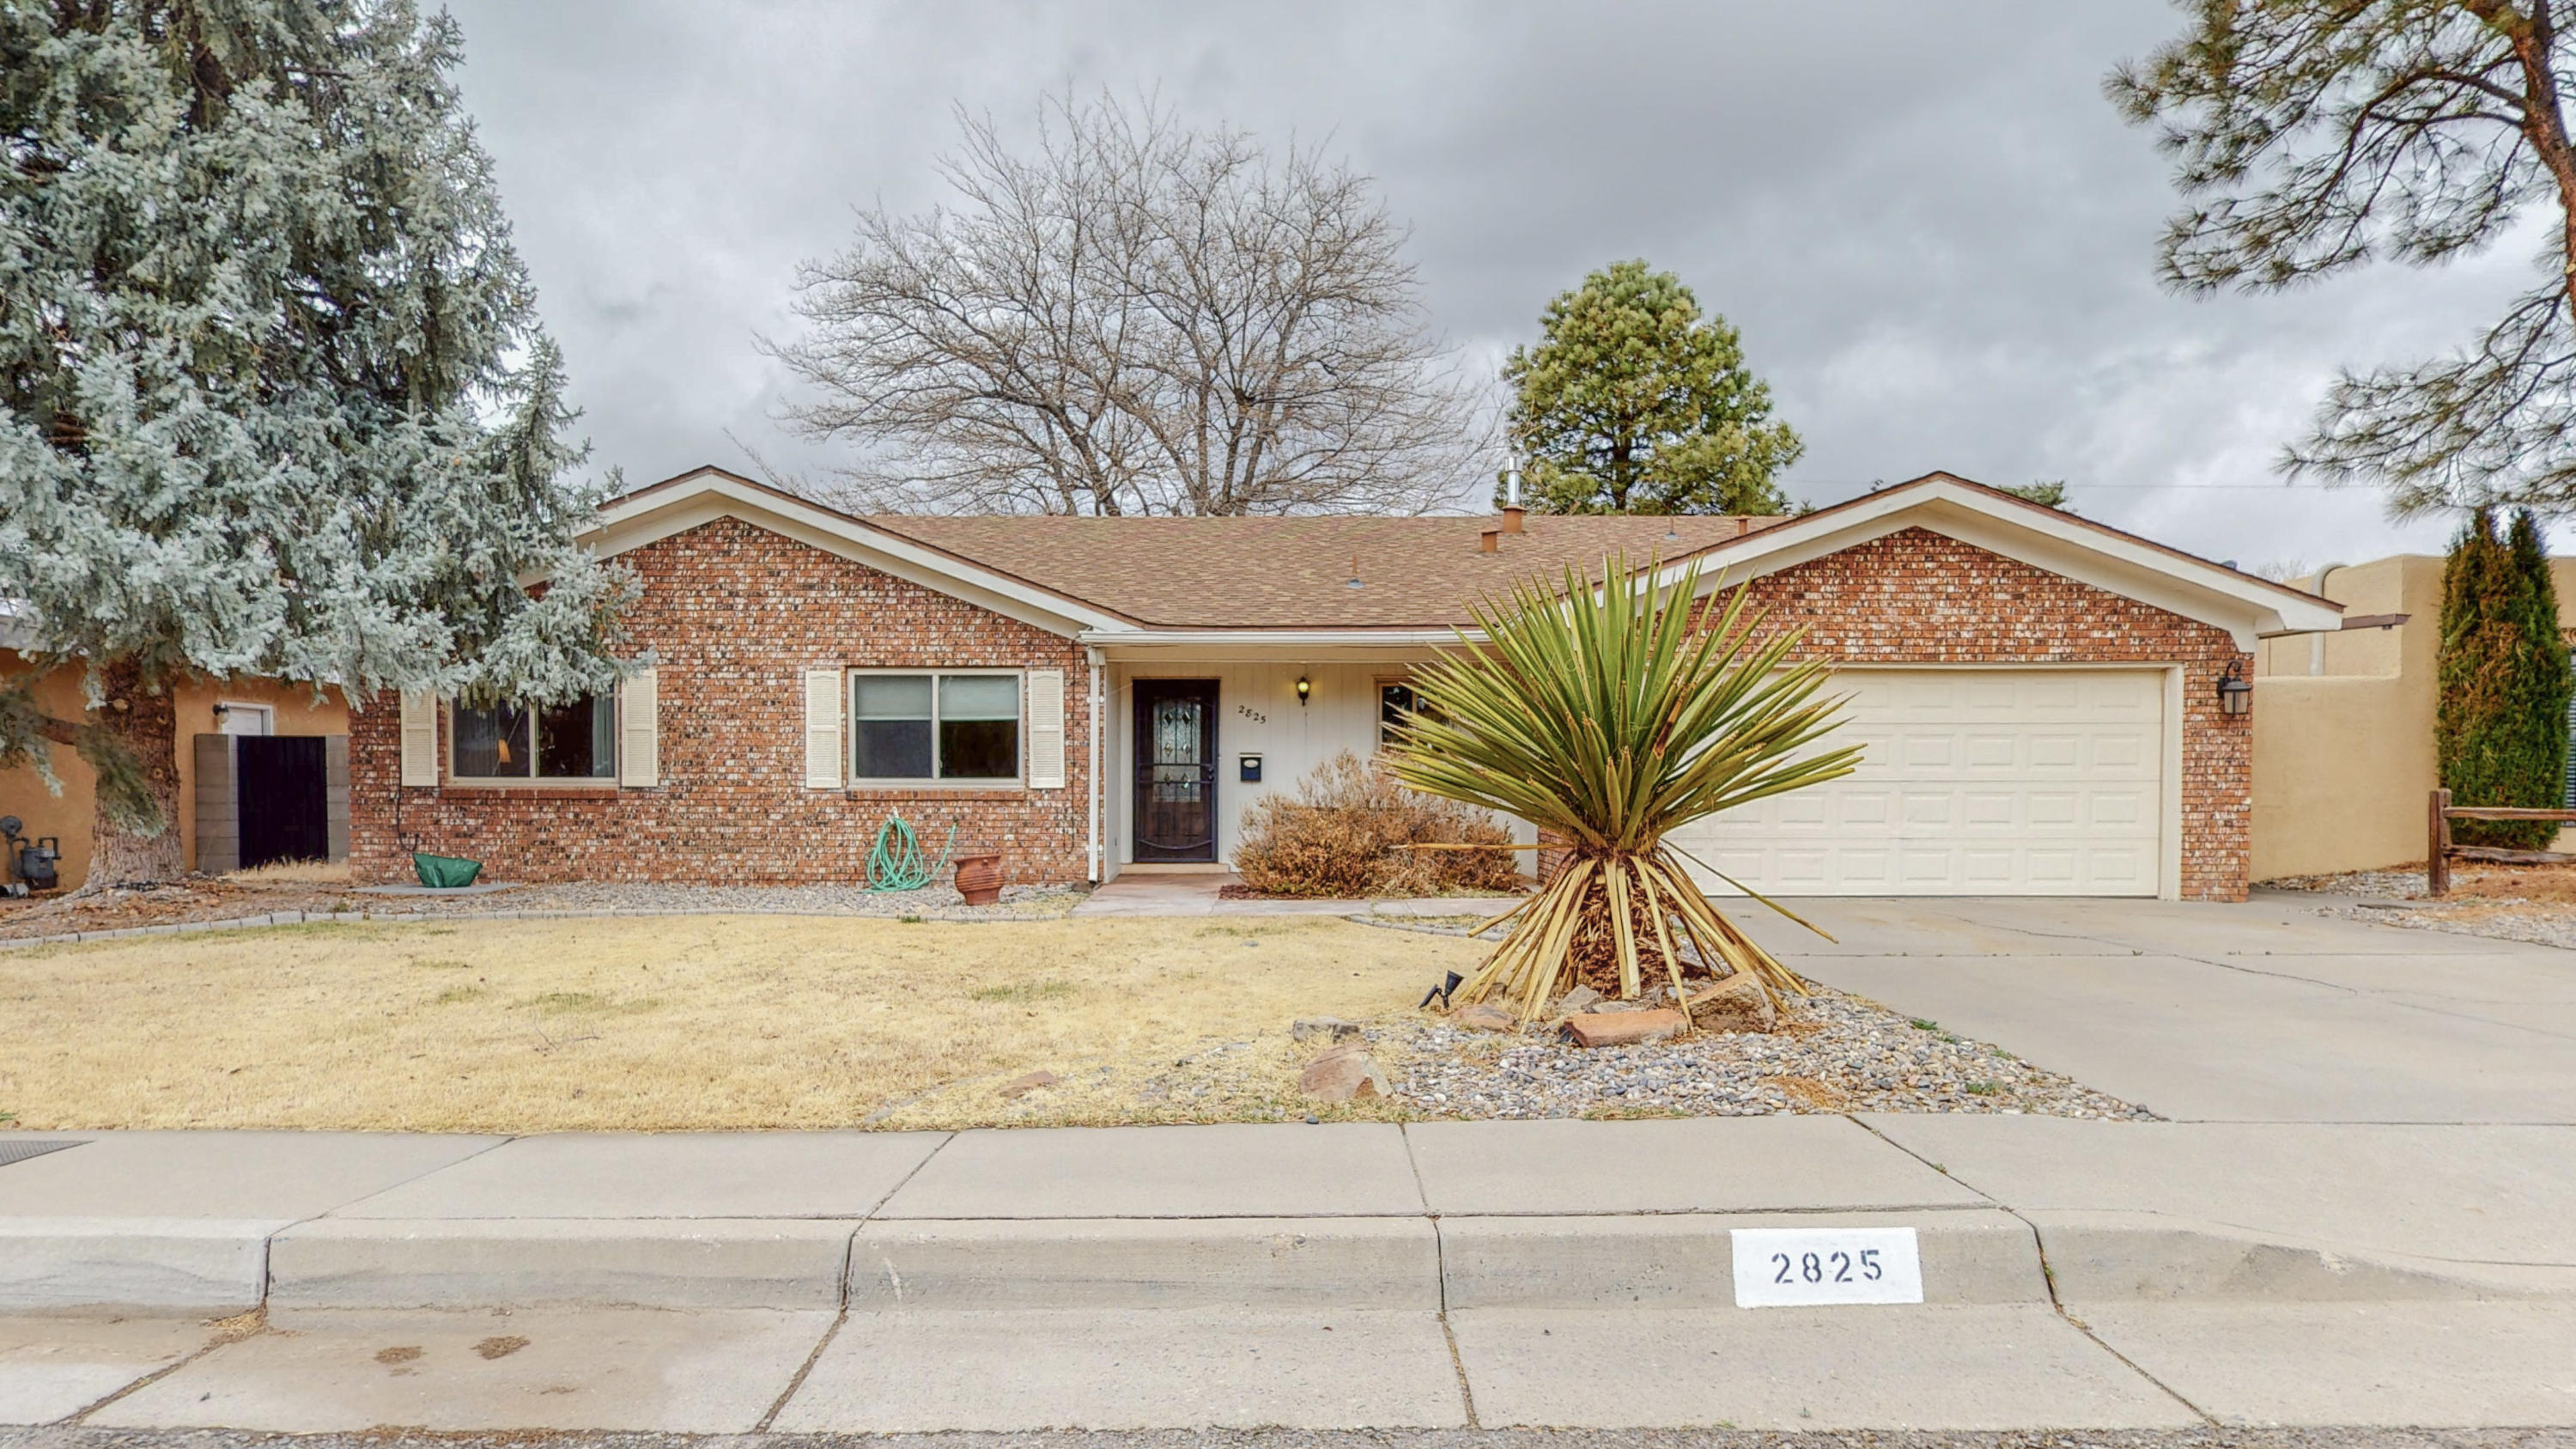 Beautifully maintained 4 Bedroom Home, 2 1/2 Bath and 2 Living Areas In the Uptown Subdivision of Vista Encantada. Spacious Living/Dining Room combo that leads in to well maintained Kitchen with room for additional seating. 2nd Living Area is the Family room that boasts a wet bar and a new pellet stove. Near library, parks, school, and shopping. All appliances and shed convey.